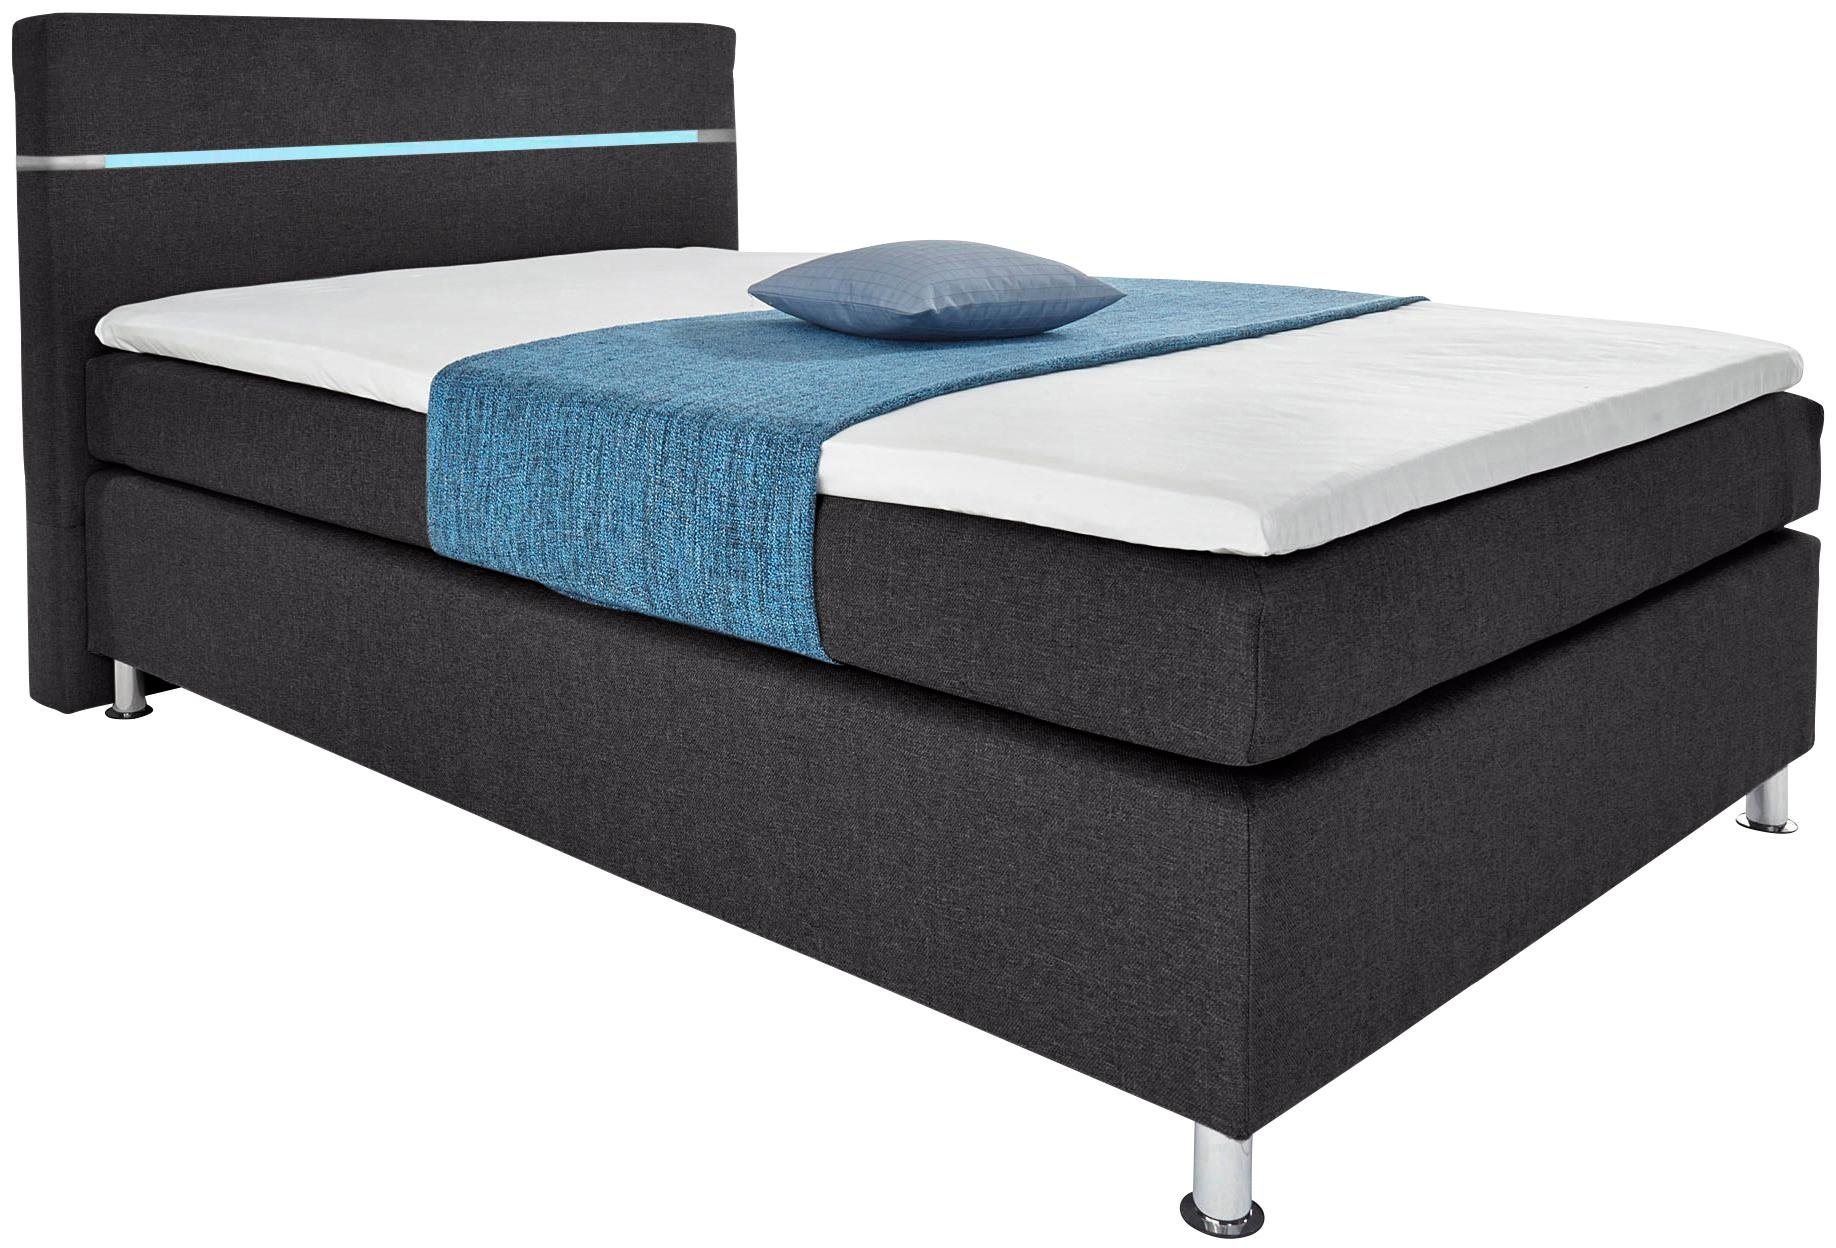 hapo boxspring met led rgb verlichting snel online gekocht. Black Bedroom Furniture Sets. Home Design Ideas